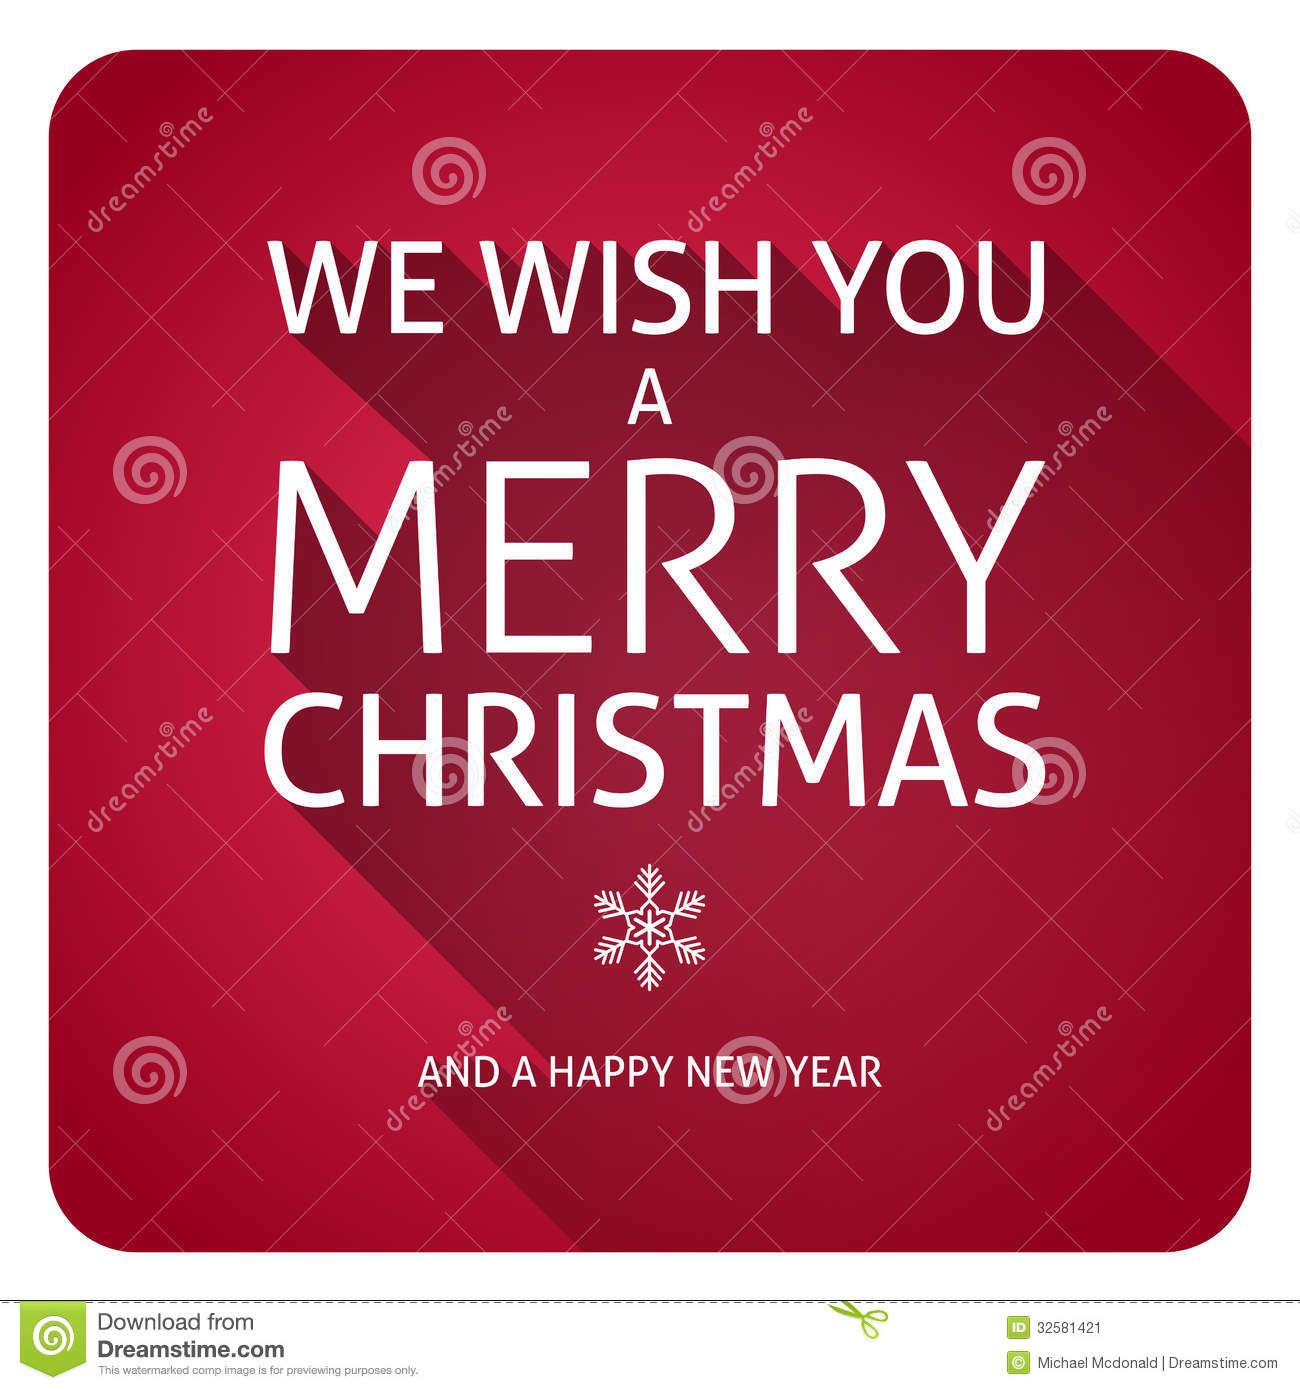 Merry Christmas Text Stock Image - Image: 32581421